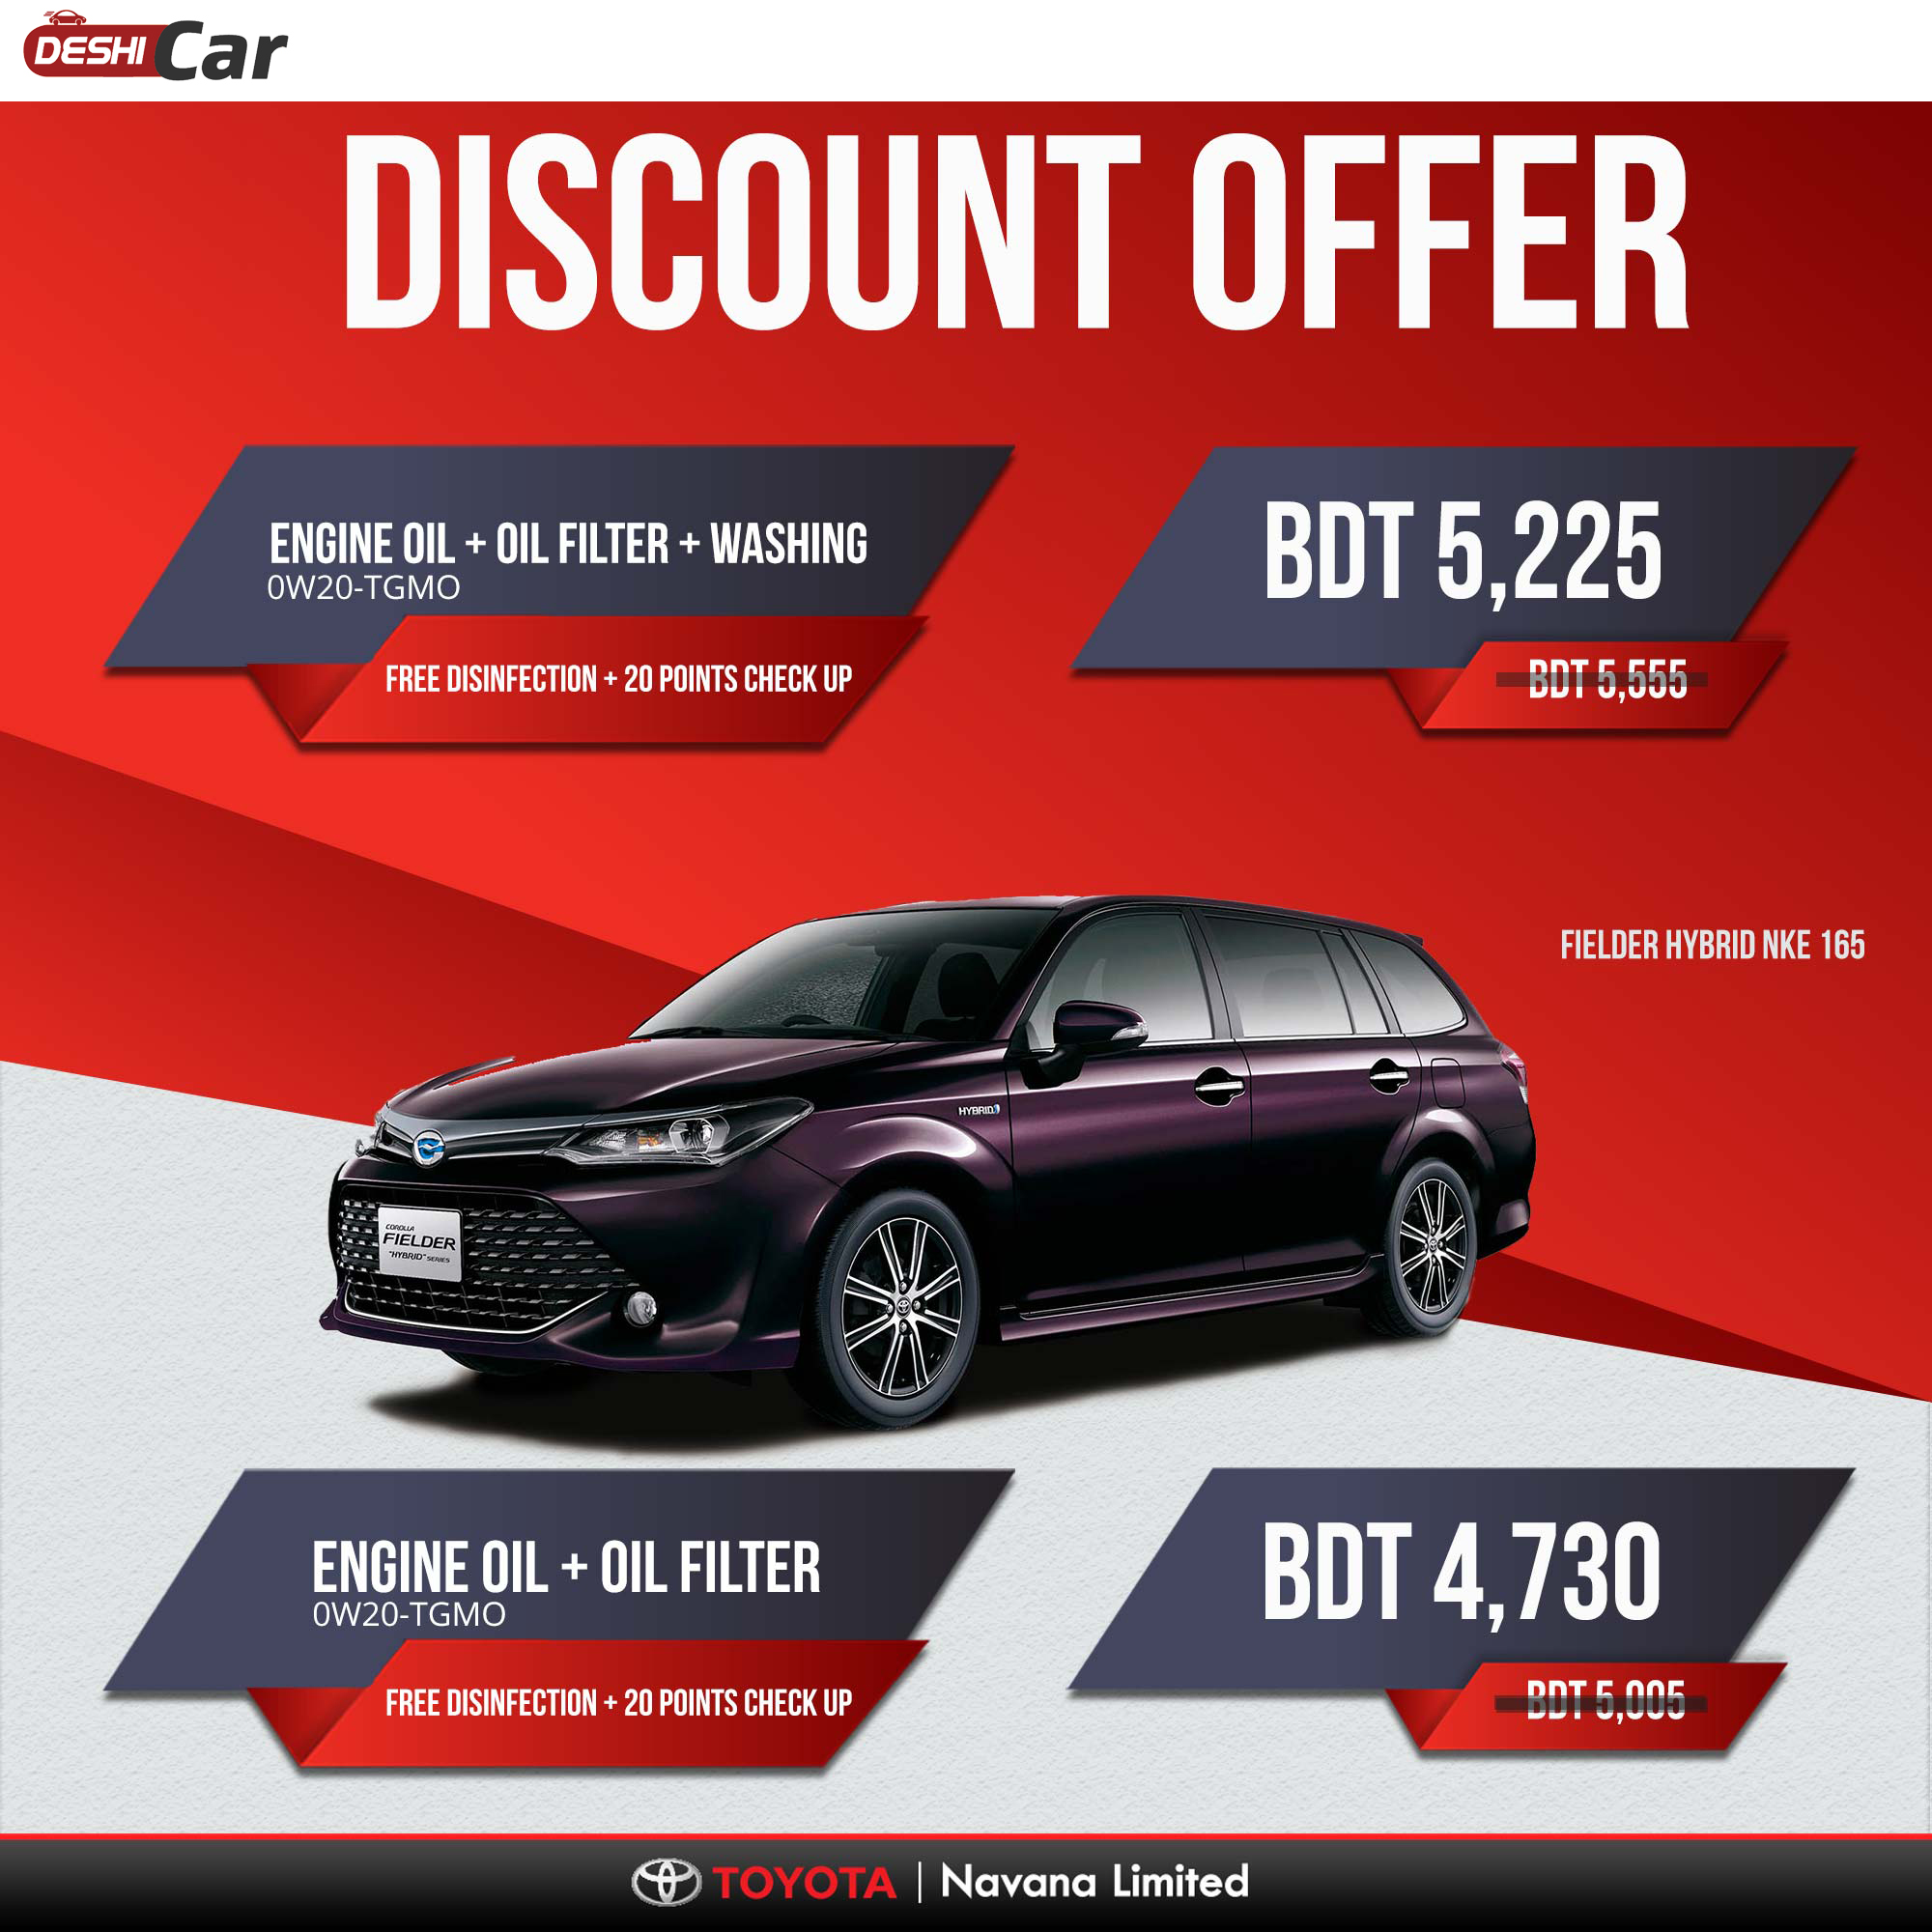 Toyota is Giving Service Discount Offer